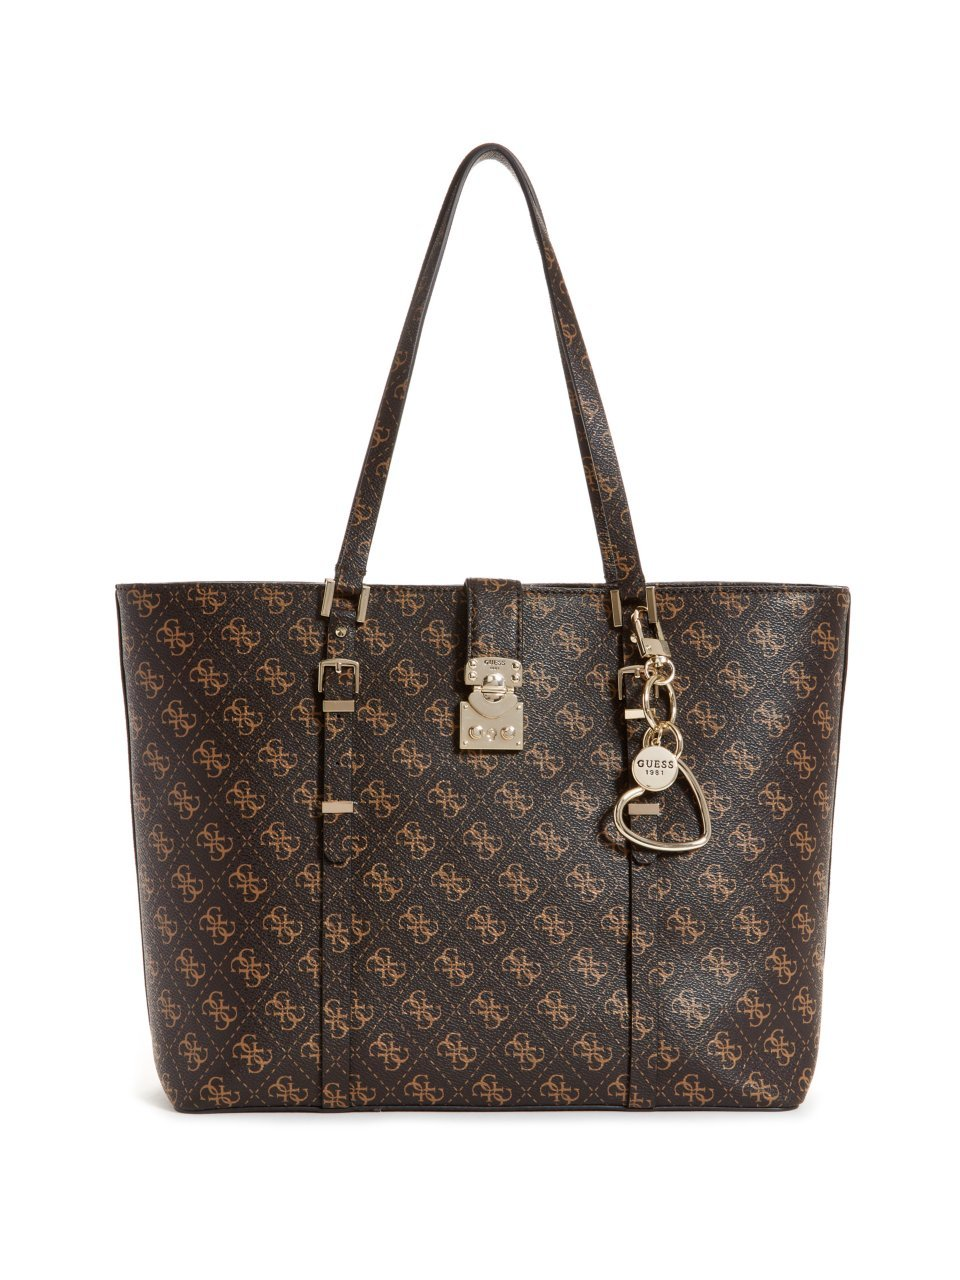 GUESS Joslyn Tote, Brown by GUESS